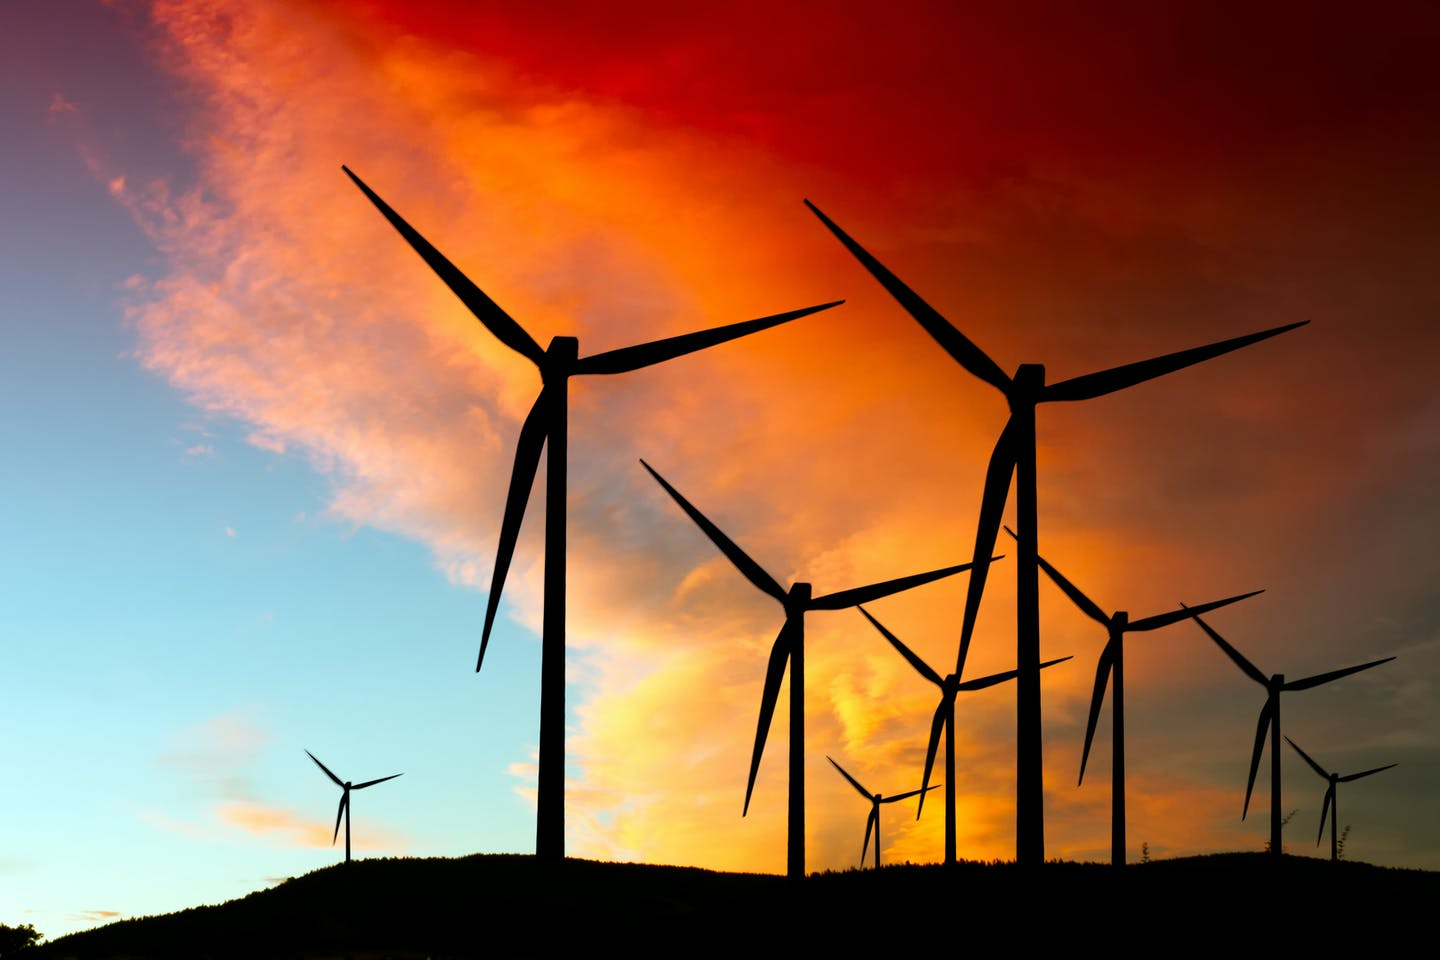 Wind farm, energy transition outlook